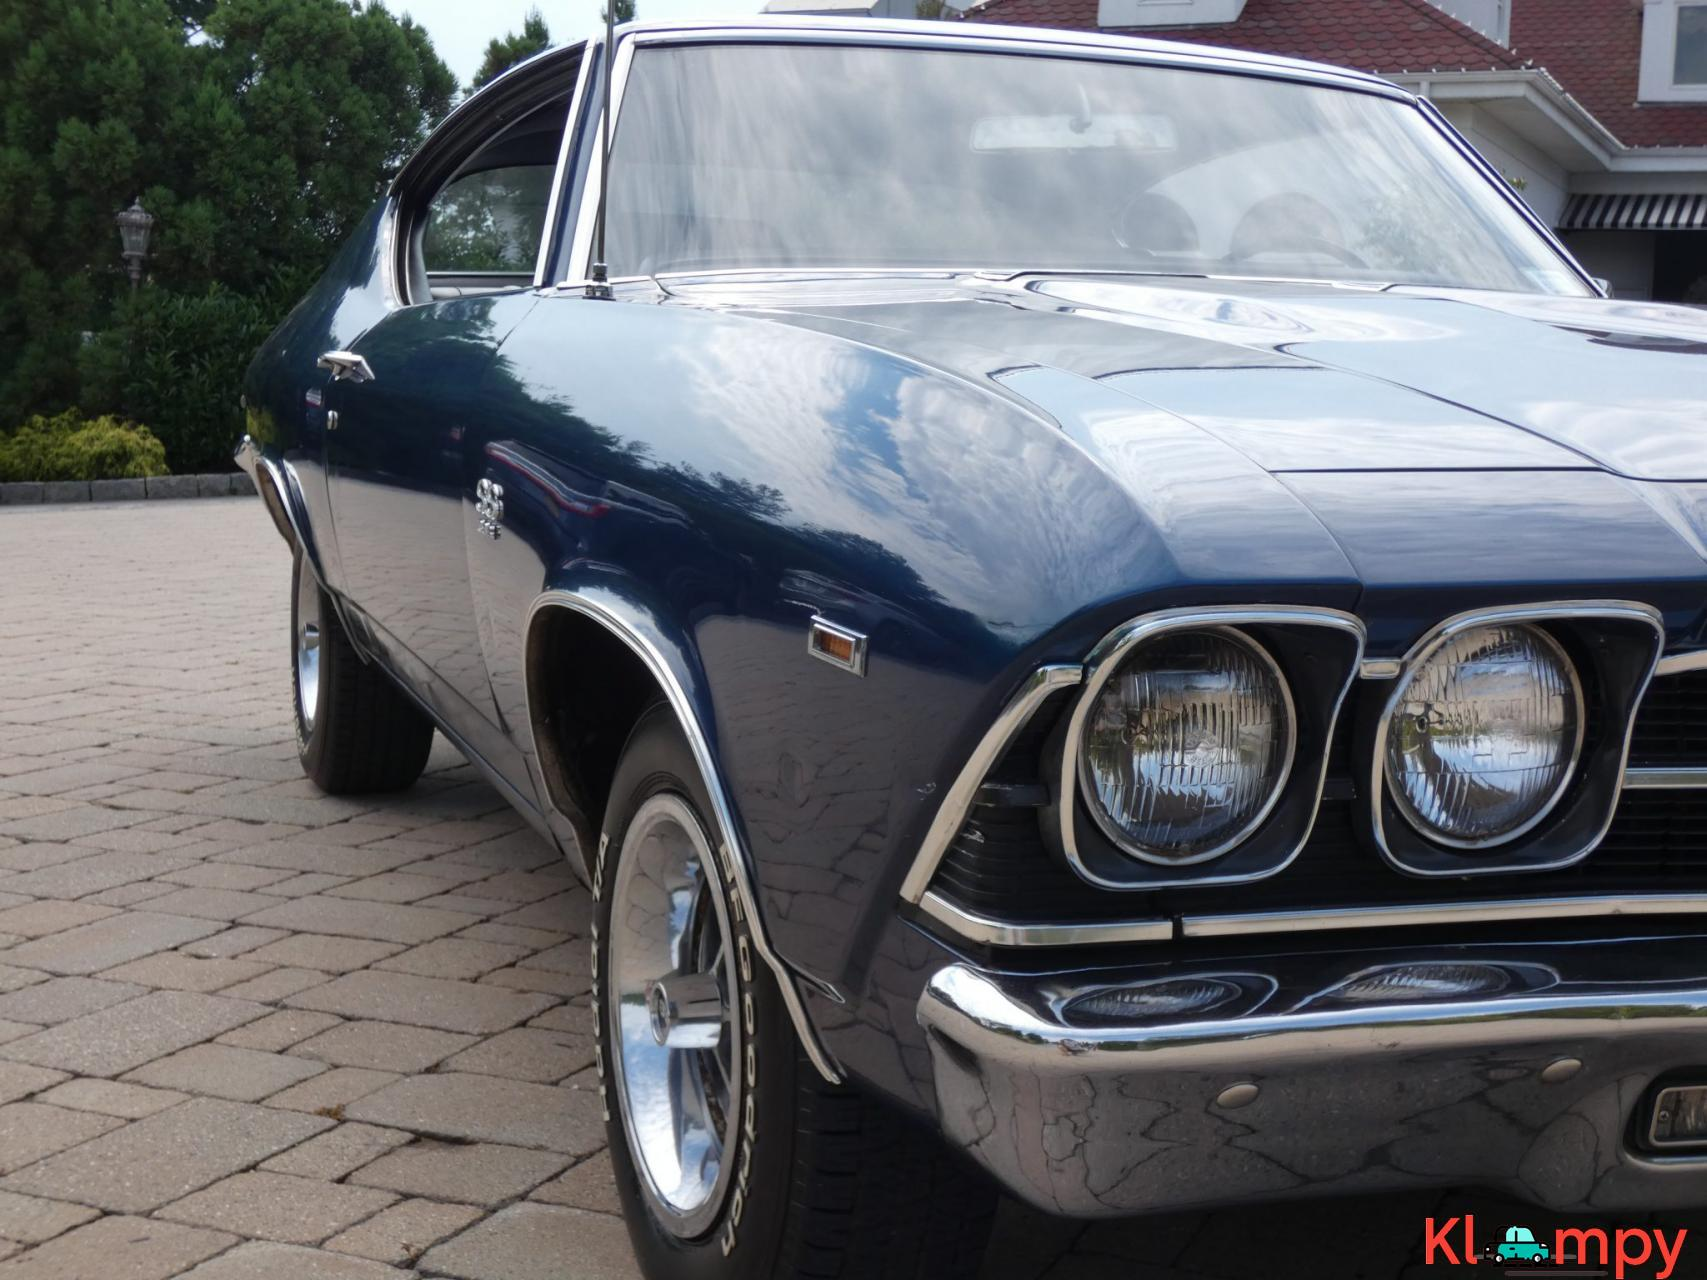 1969 Chevrolet Chevelle SS 396 Sport Coupe - 10/27